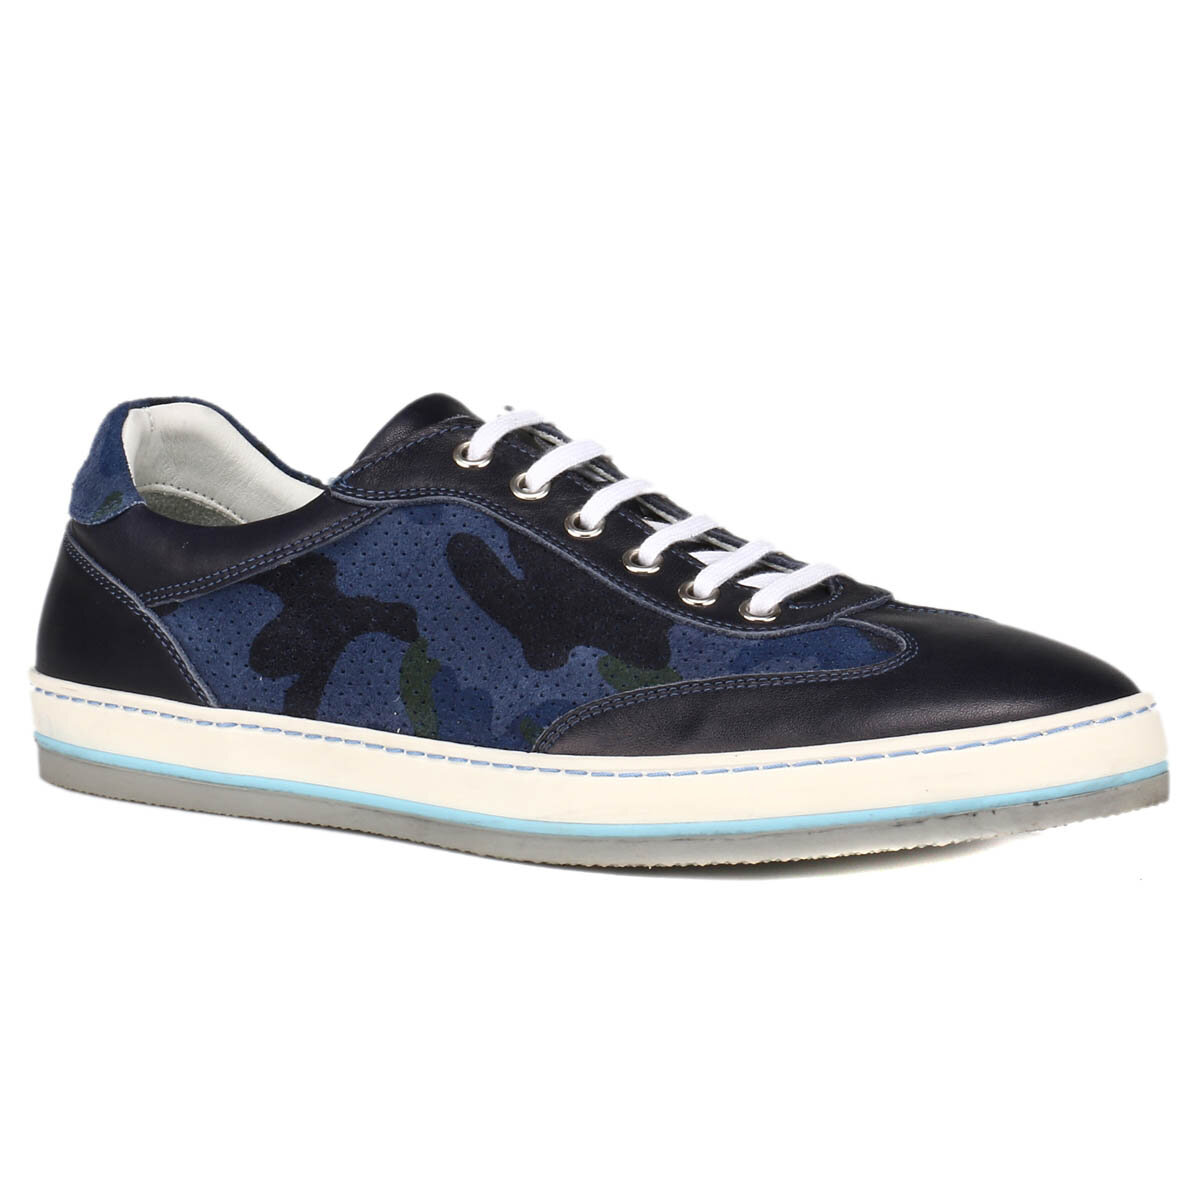 FLO 1 Navy Blue Men 'S Shoes Salvano